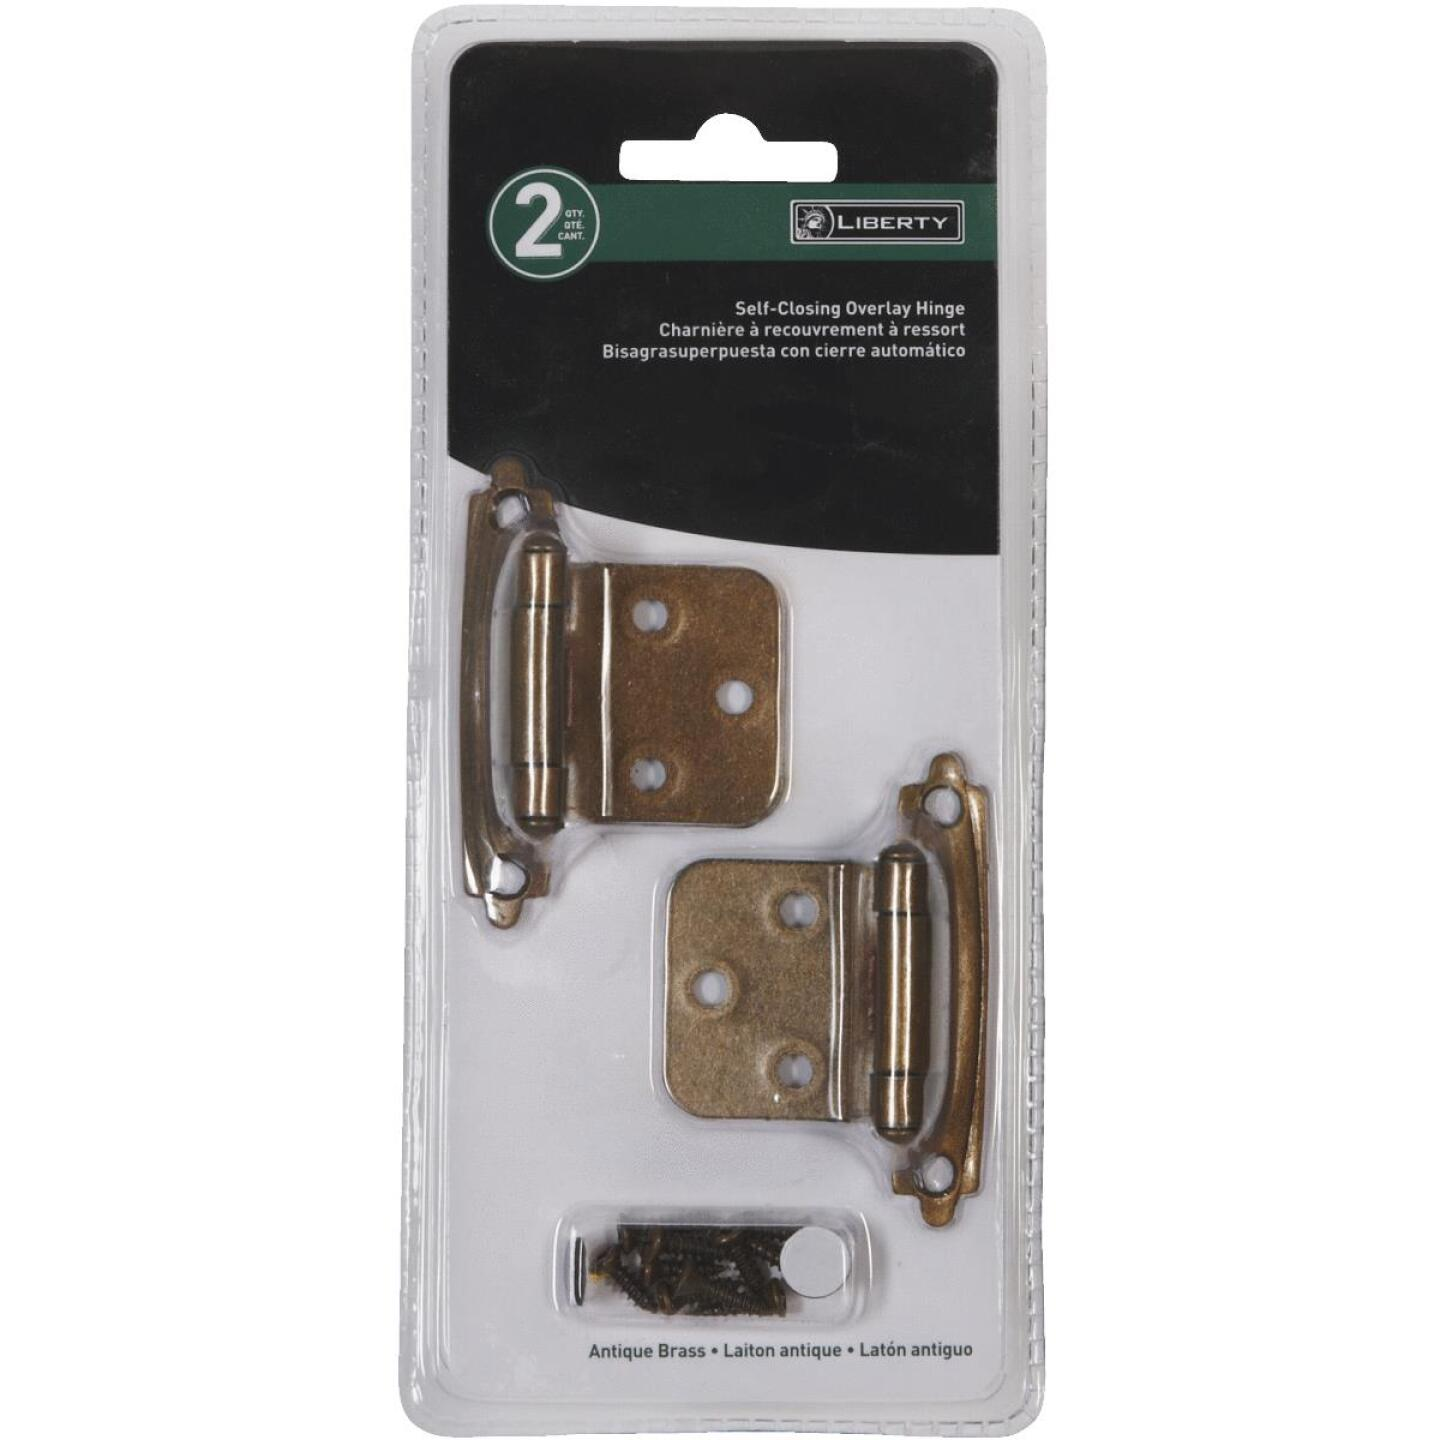 Liberty Antique Brass Self-Closing Overlay Hinge (2-Pack) Image 2